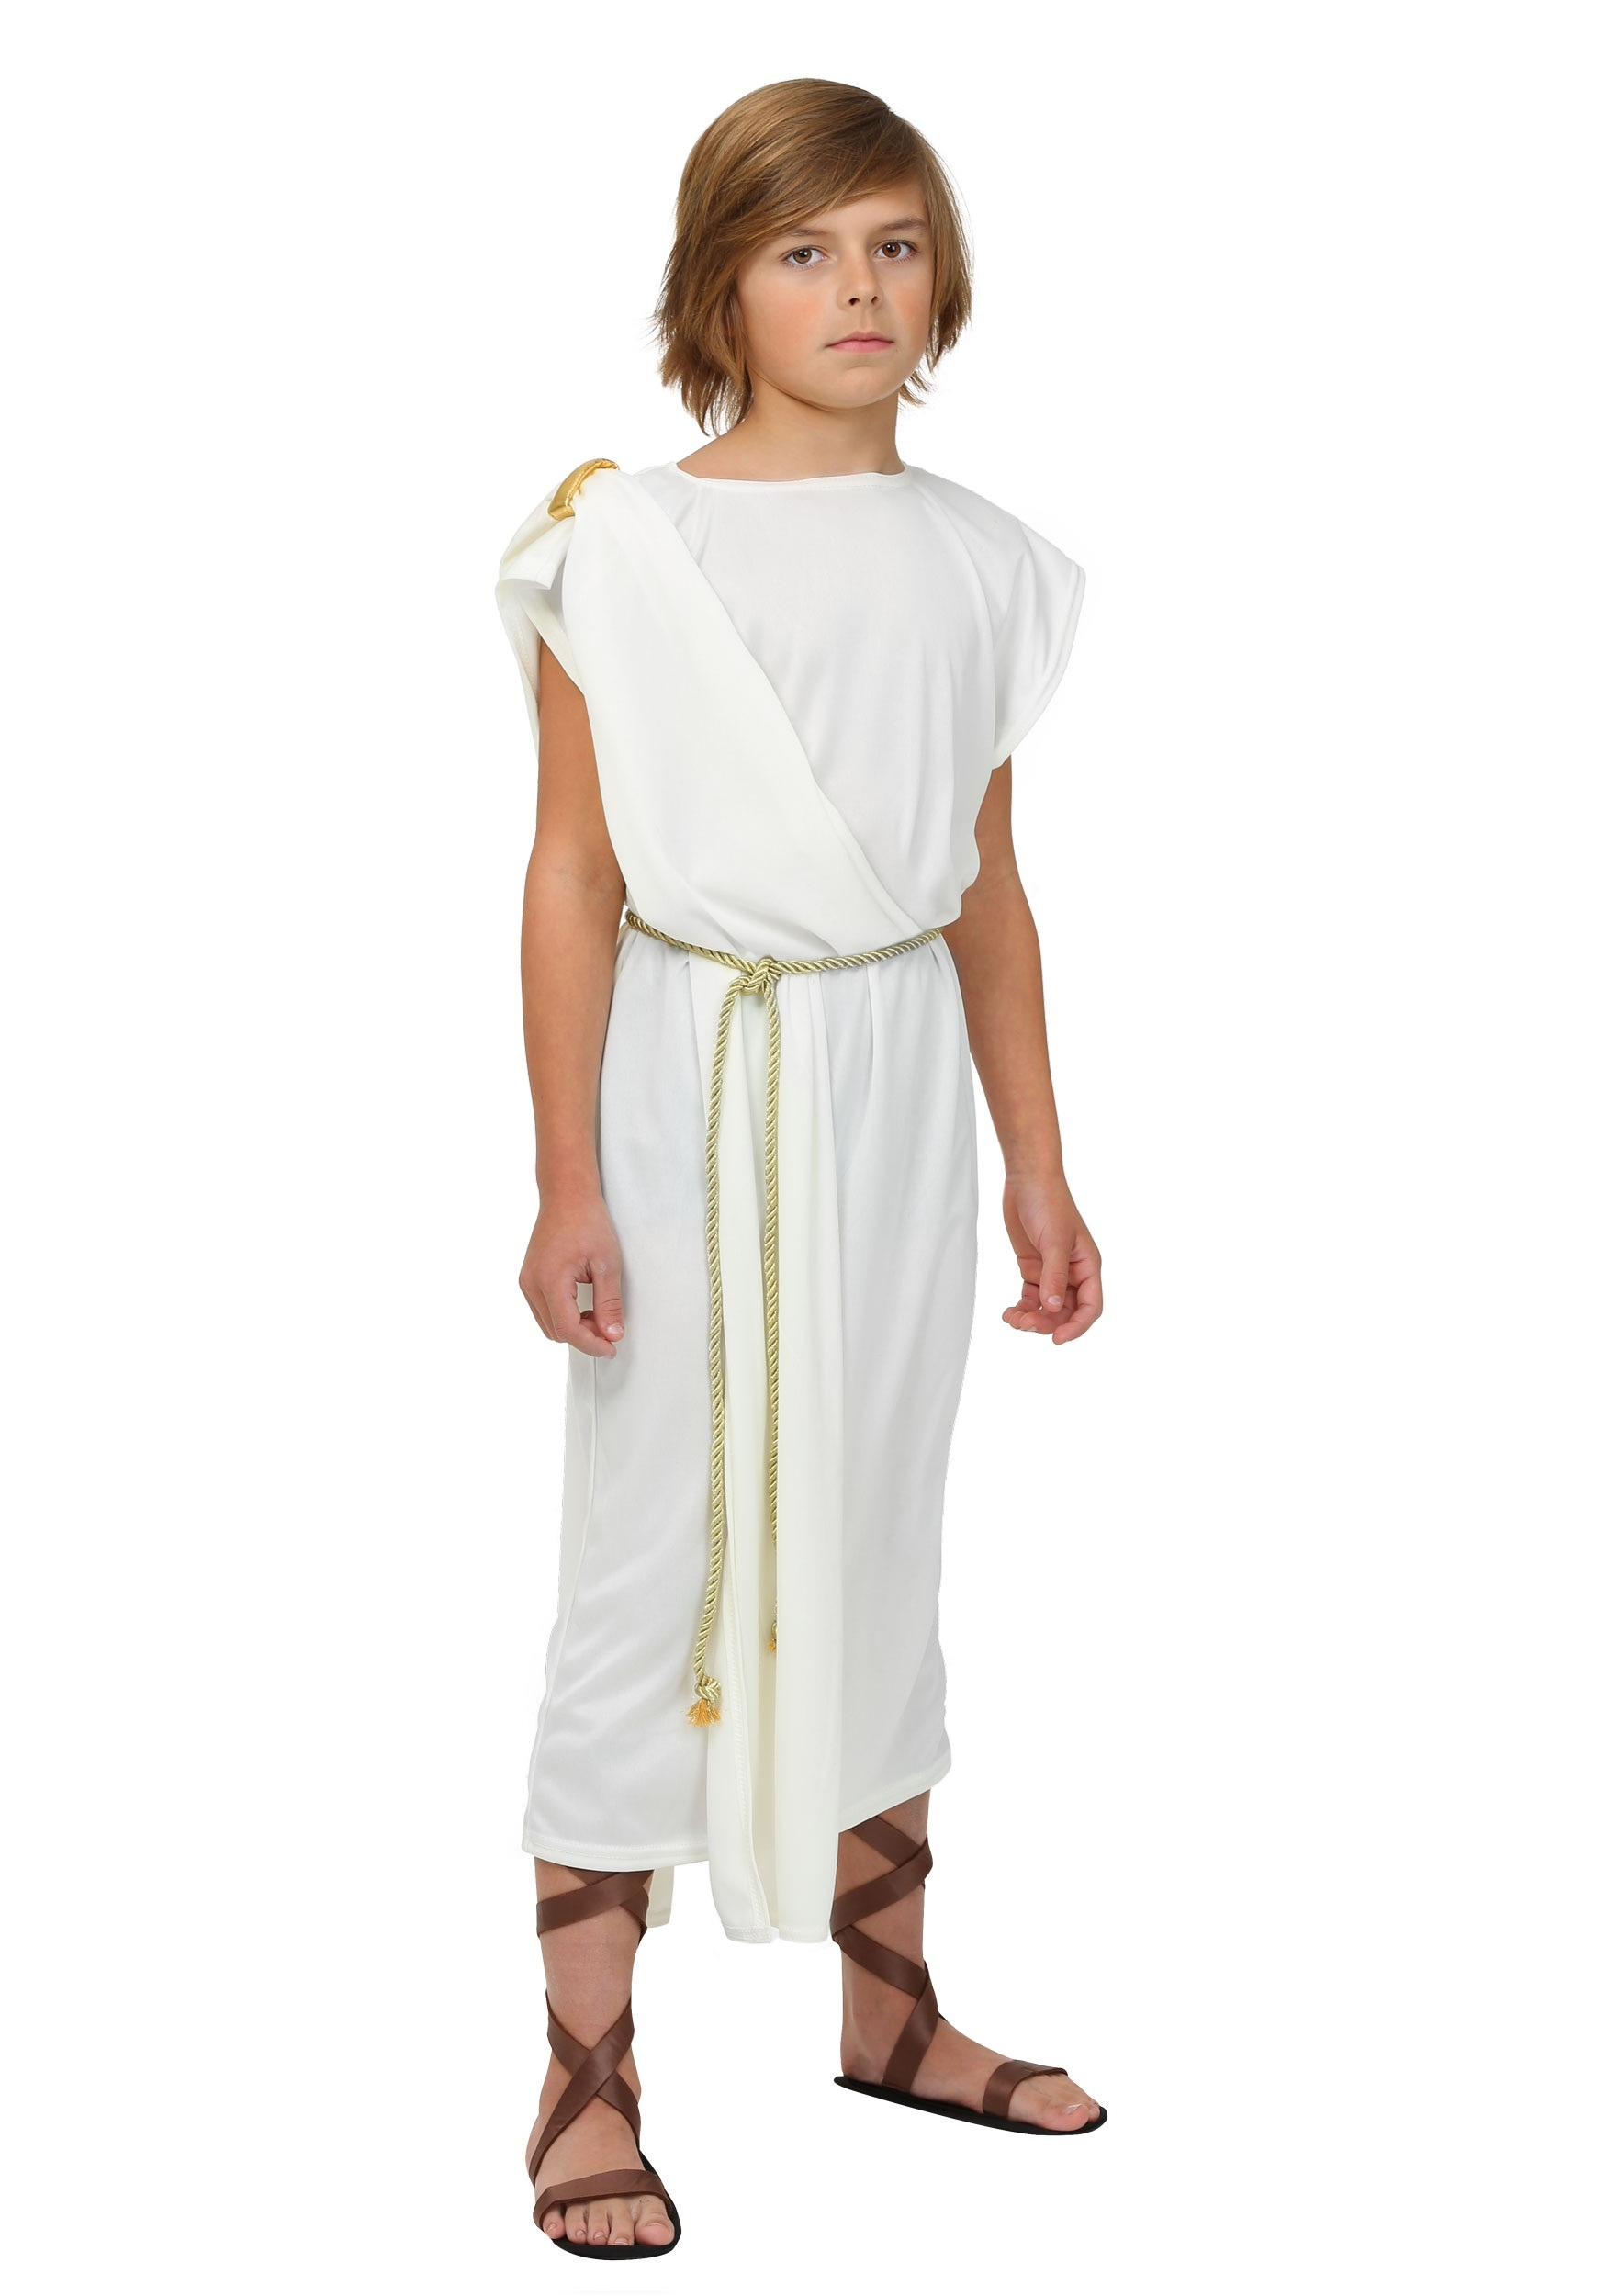 Children's Toga Costume